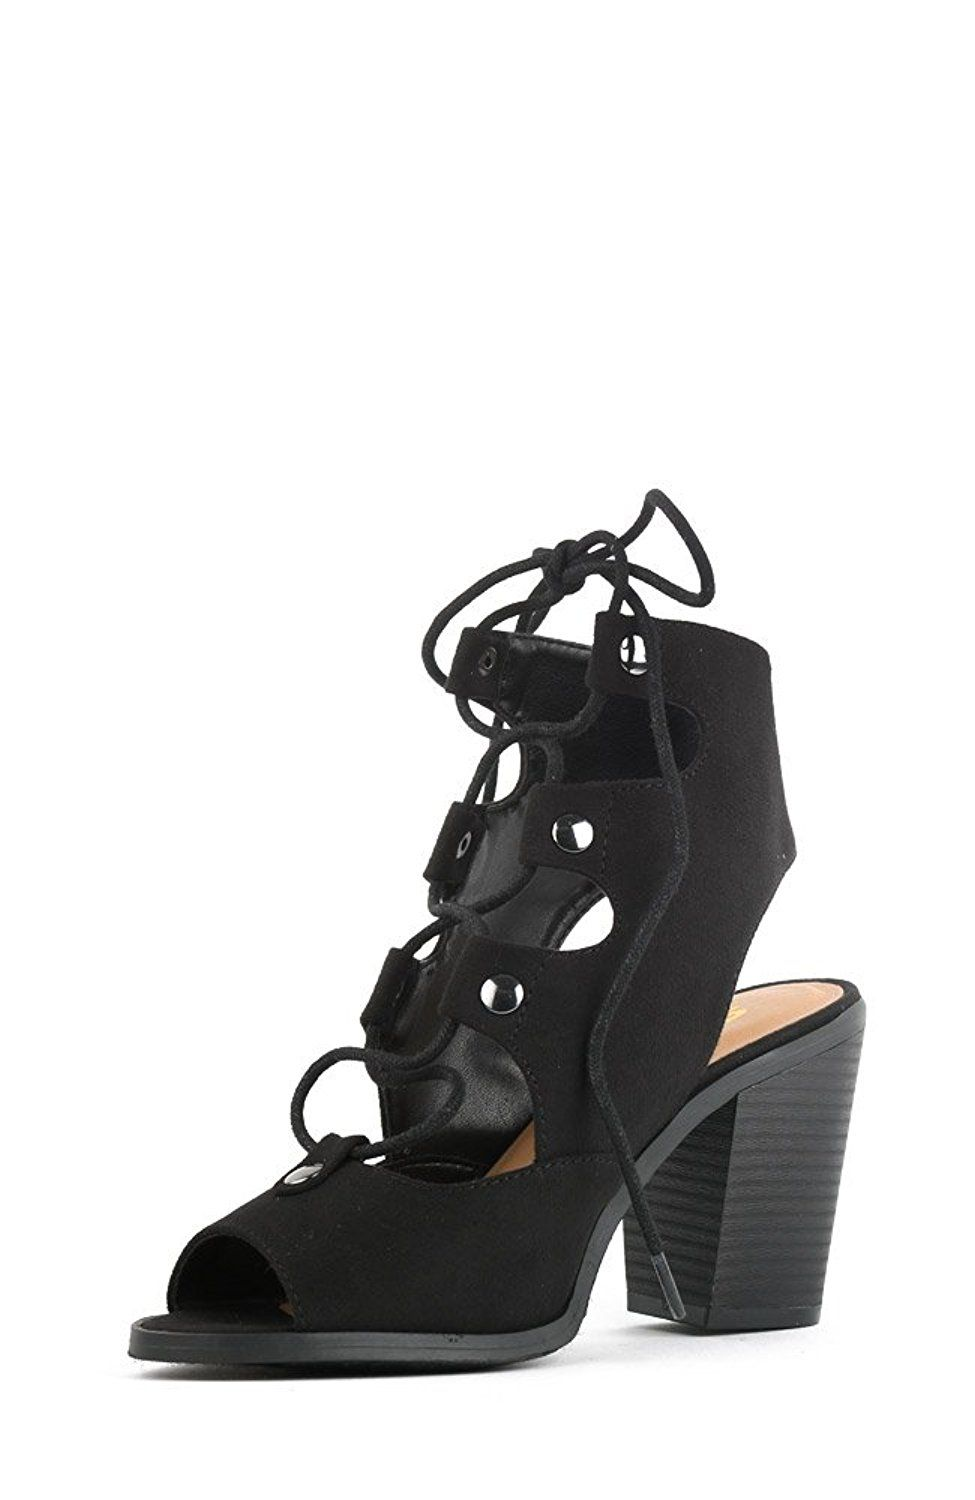 24485d049cc Soda RACE Women s Stylish Lace Up Gladiator Cage Low Chunky Block Heel  Sandal - Black Imitation Suede   Review more details here   Gladiator  sandals